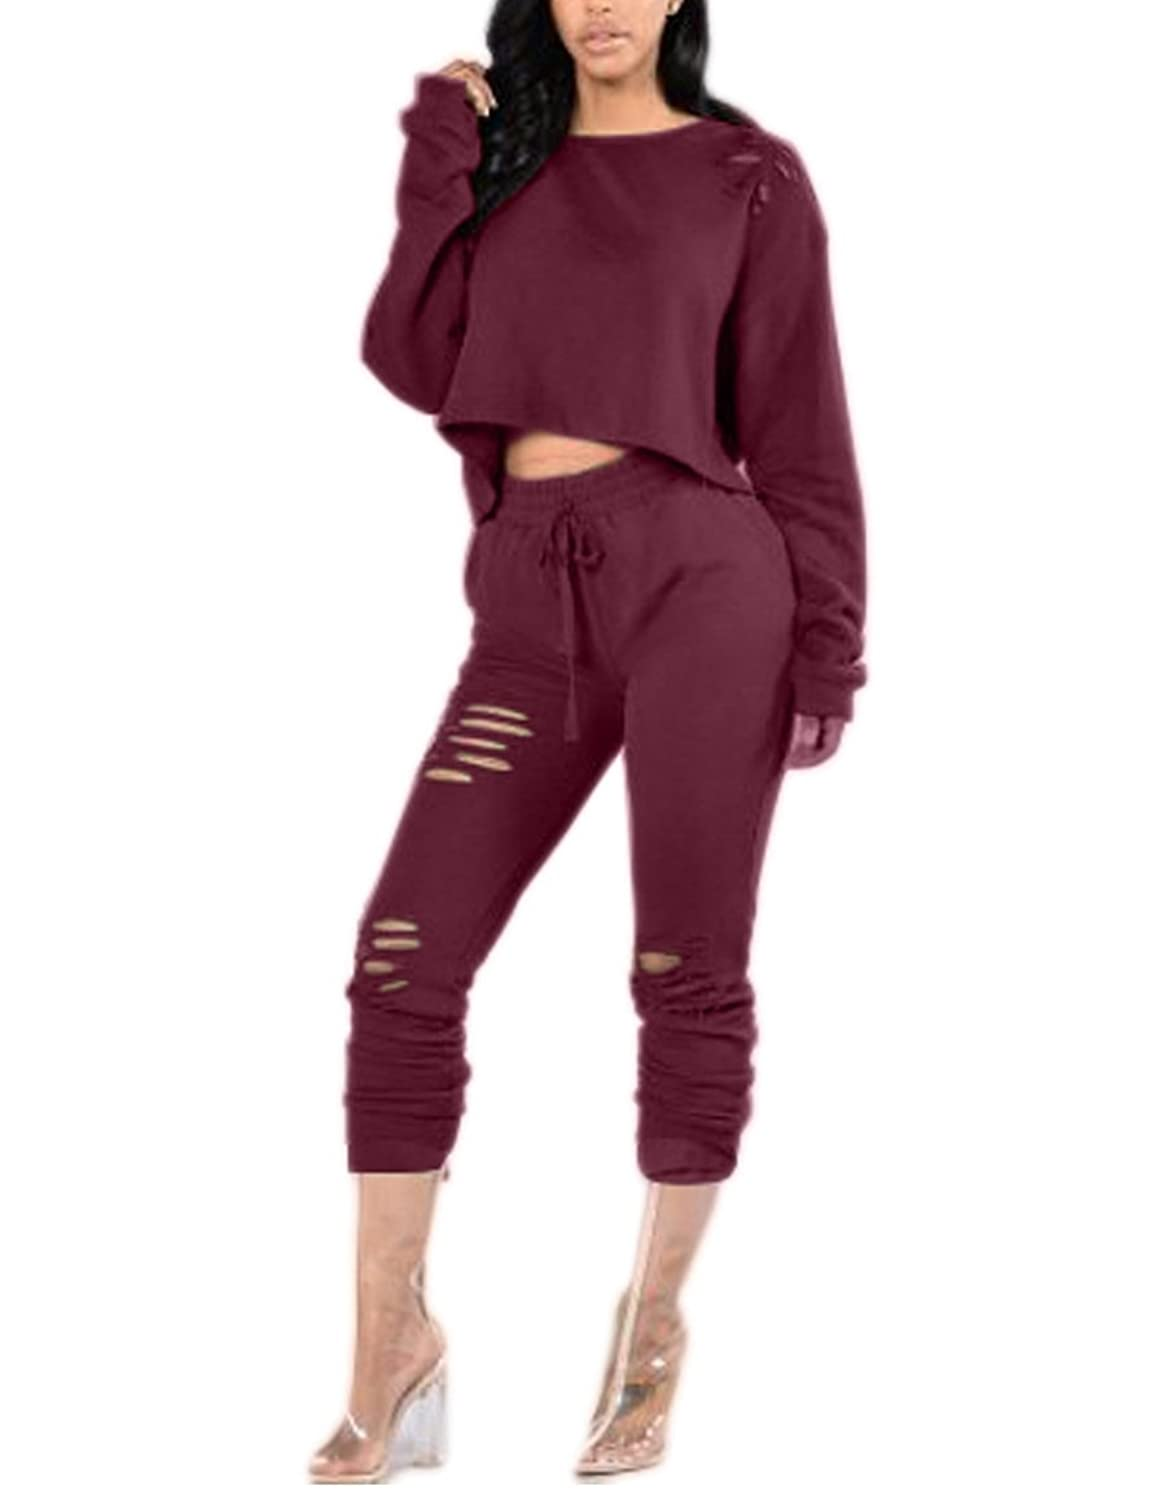 Women Round Neck Long Sleeve Hollow Out Casual Crop Top Long Pant 2 Pieces Set